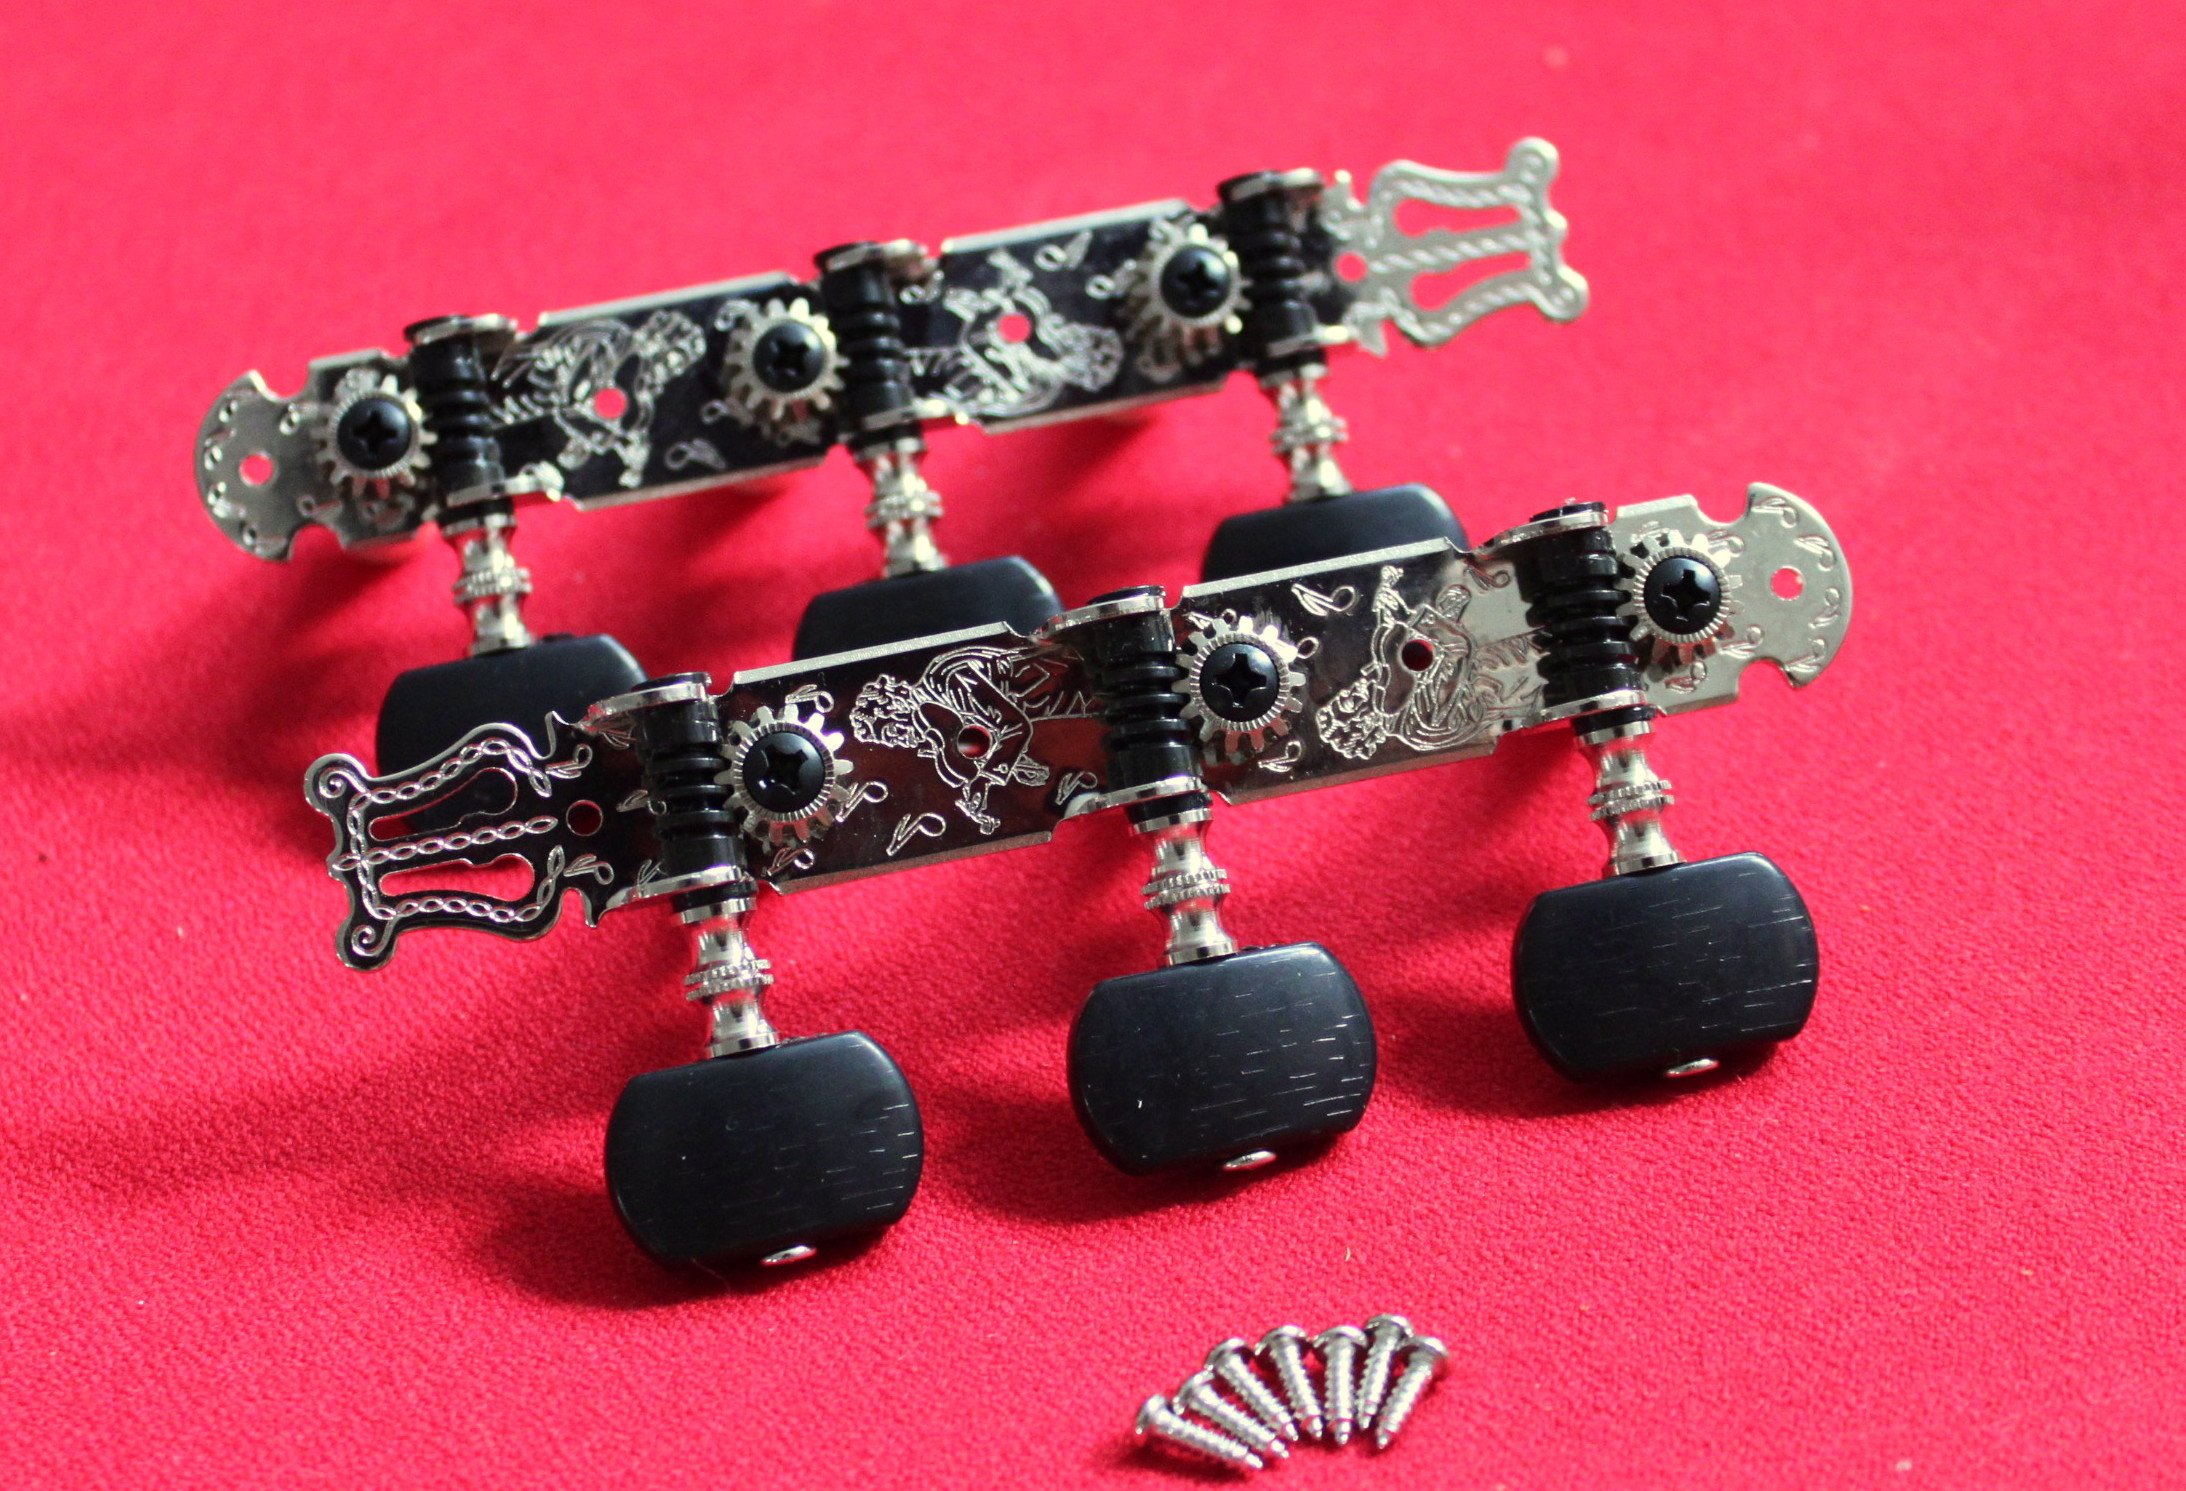 1 Set Classical Guitar Tuners Machine Headst Silve side plates & Black pegs